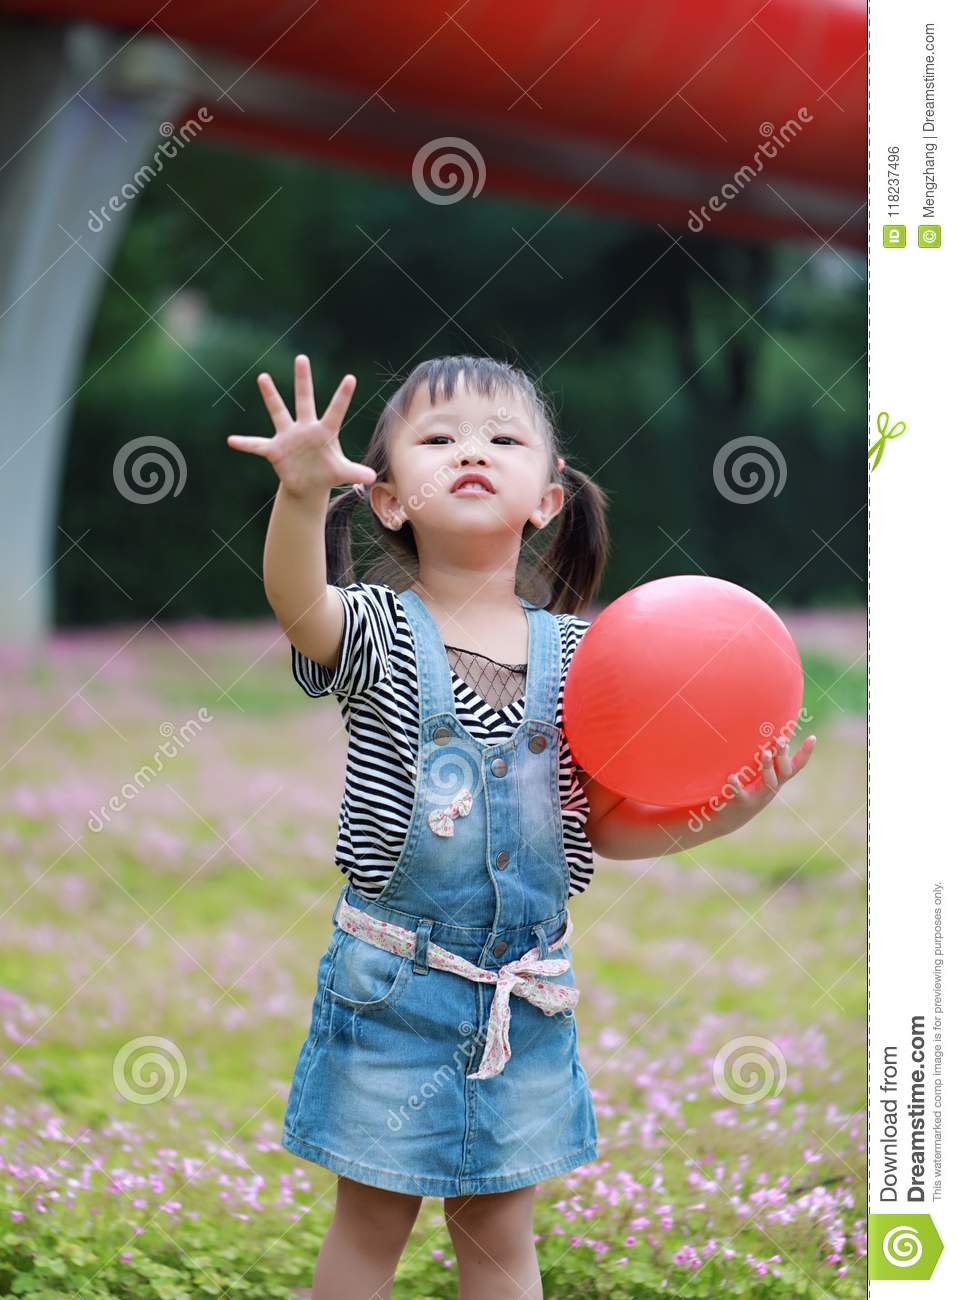 Aisa cute naughty lovely child girl with V pose play with balloon have fun outdoor in summer park happy smile happiness childhood